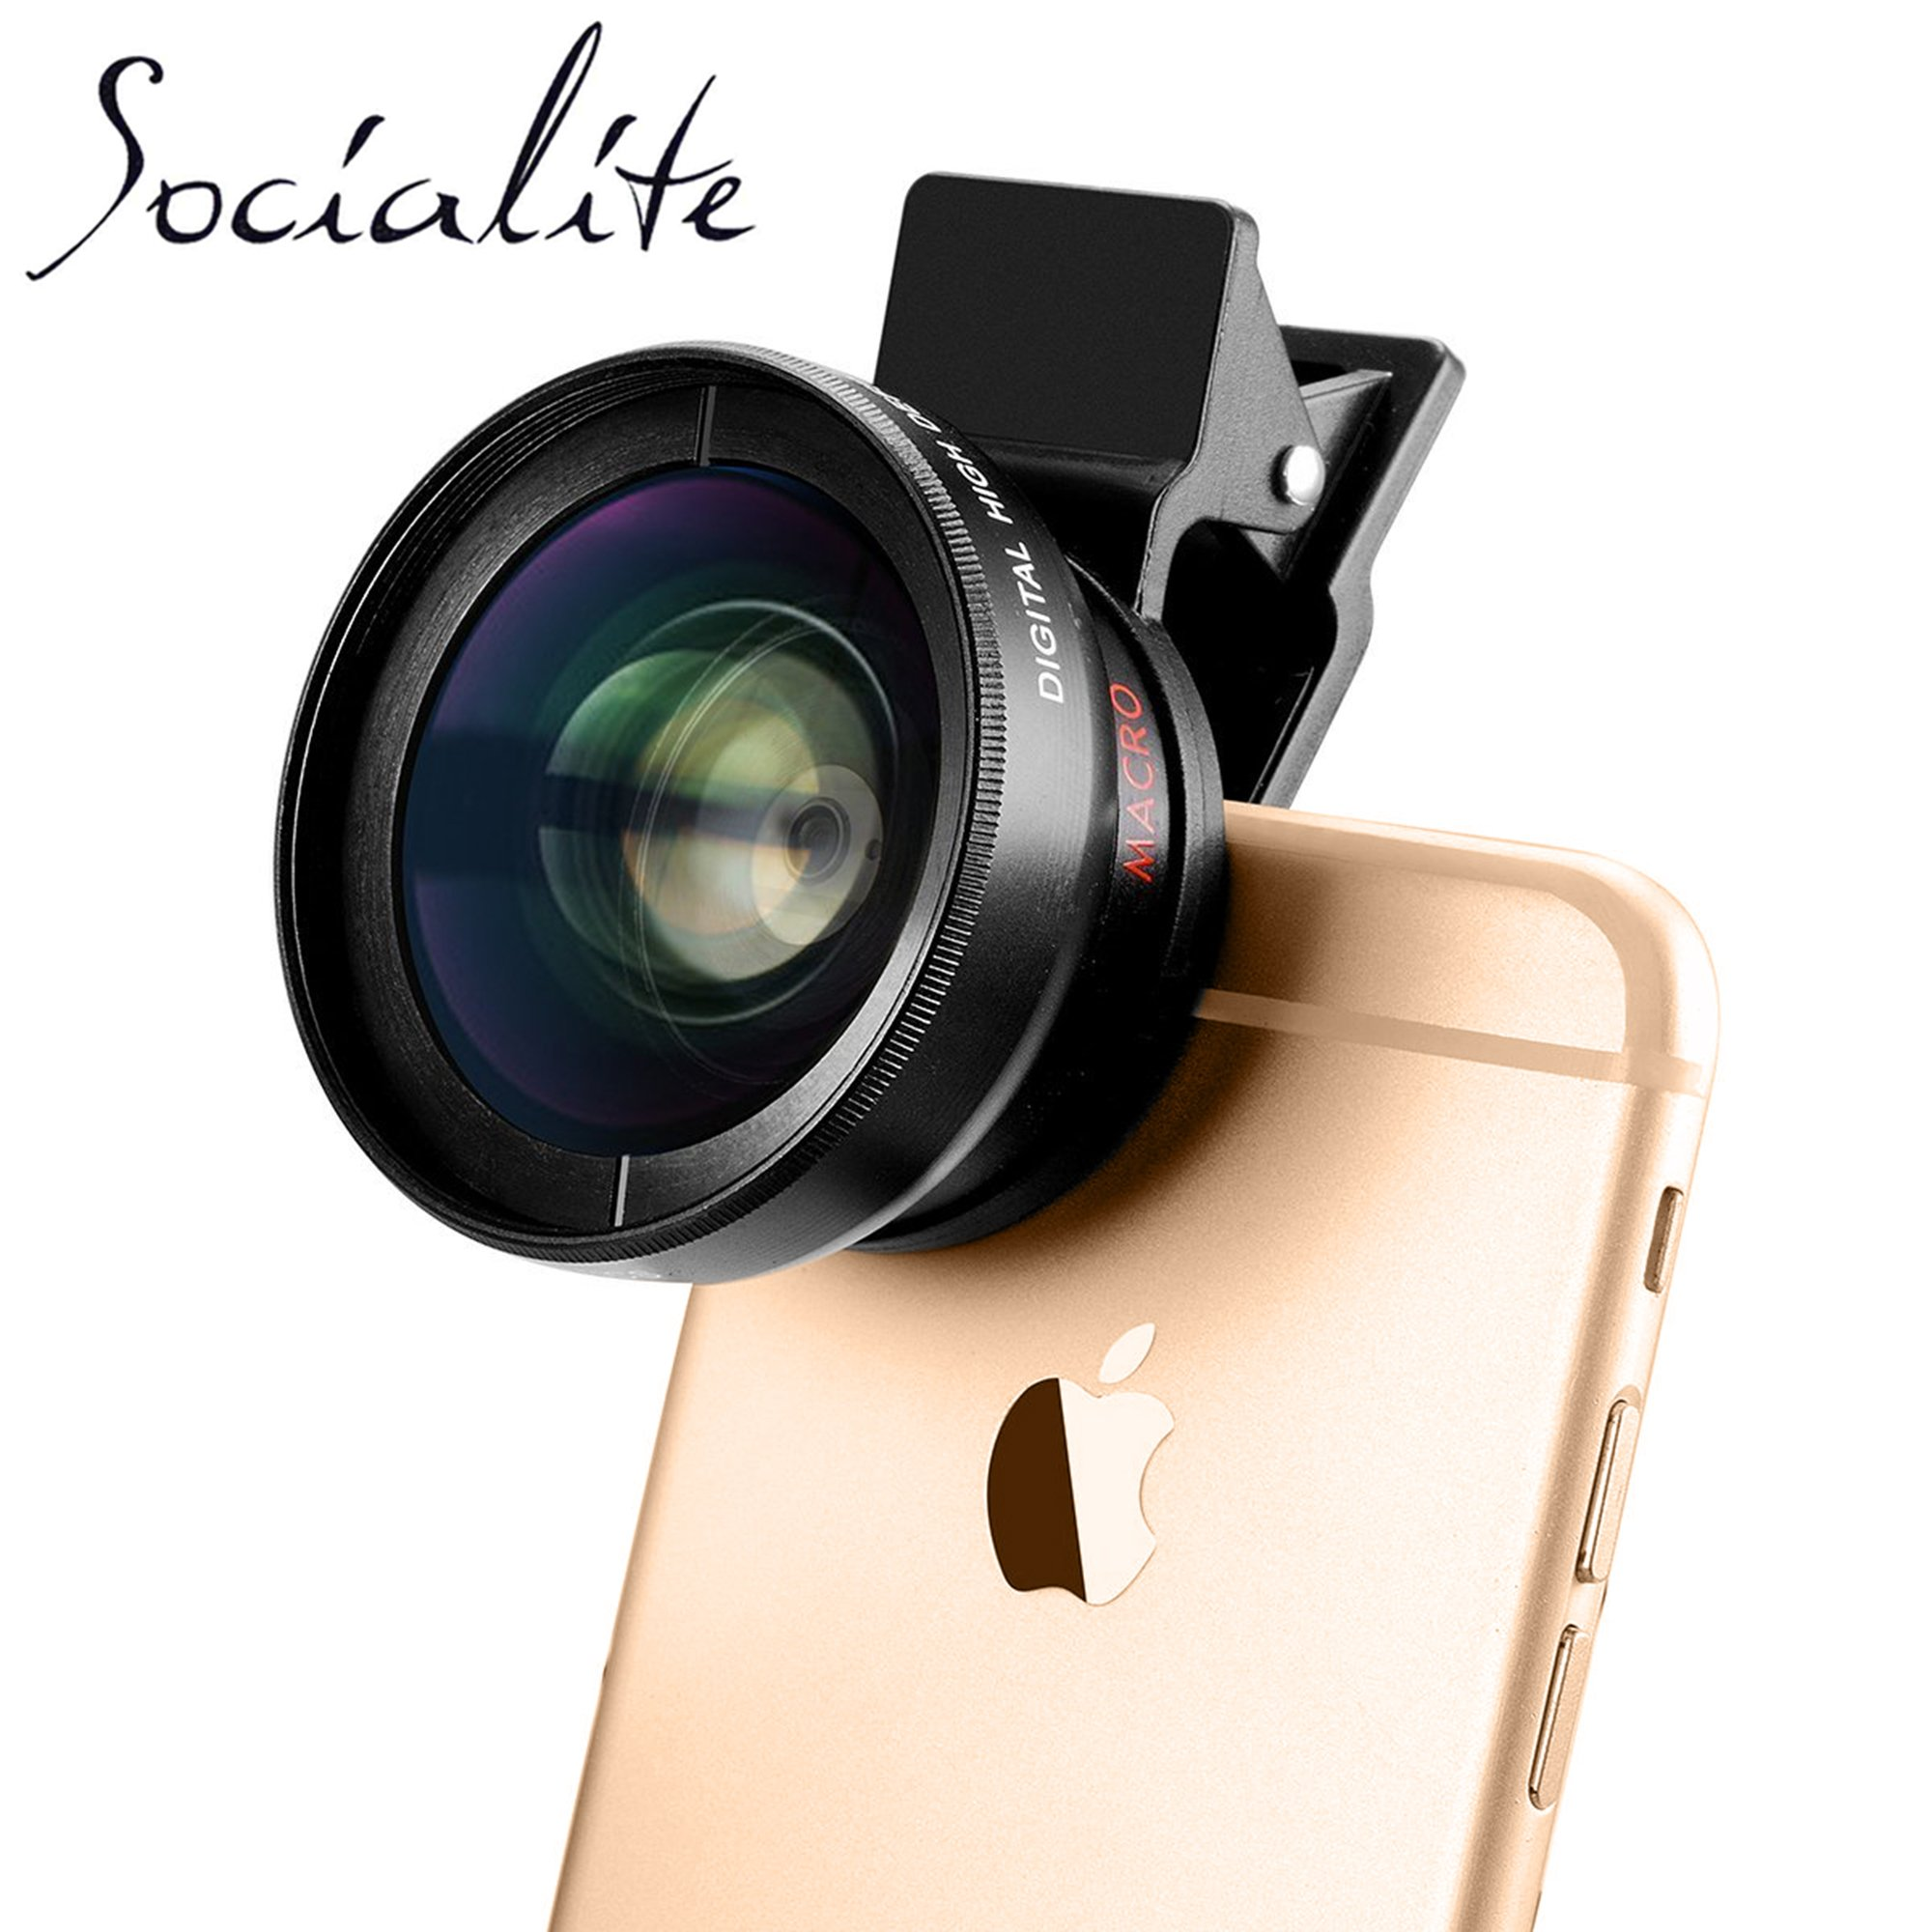 SOCIALITE Professional HD Camera Photo & Video Clip On Lens Kit for iPhone Smartphone 6s 7 8 X Plus Mobile Phone Android, & Samsung 0.45x Super Wide Angle Lens 12.5x Macro